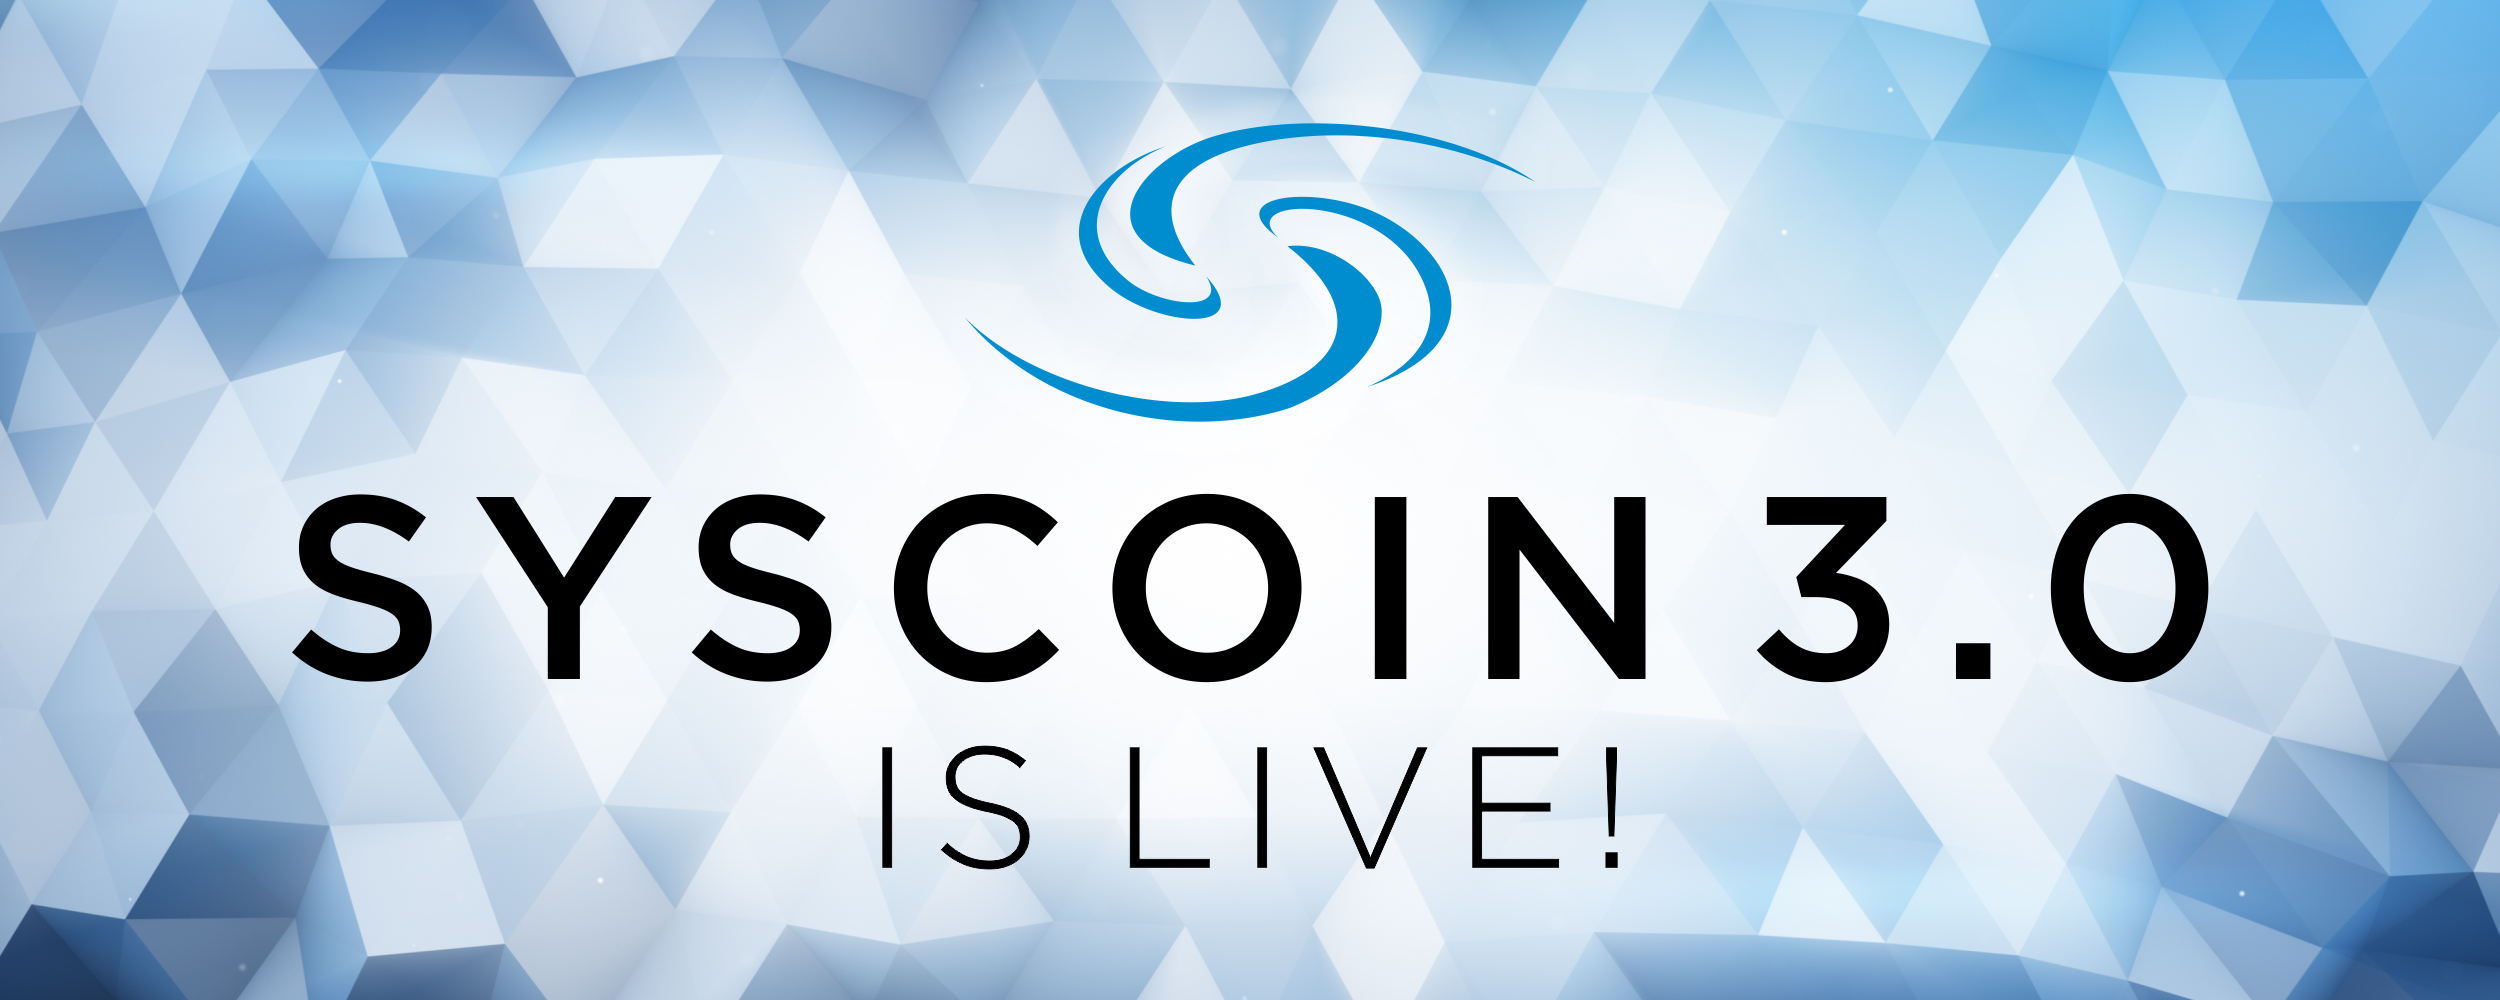 Syscoin 3 0 Is Live